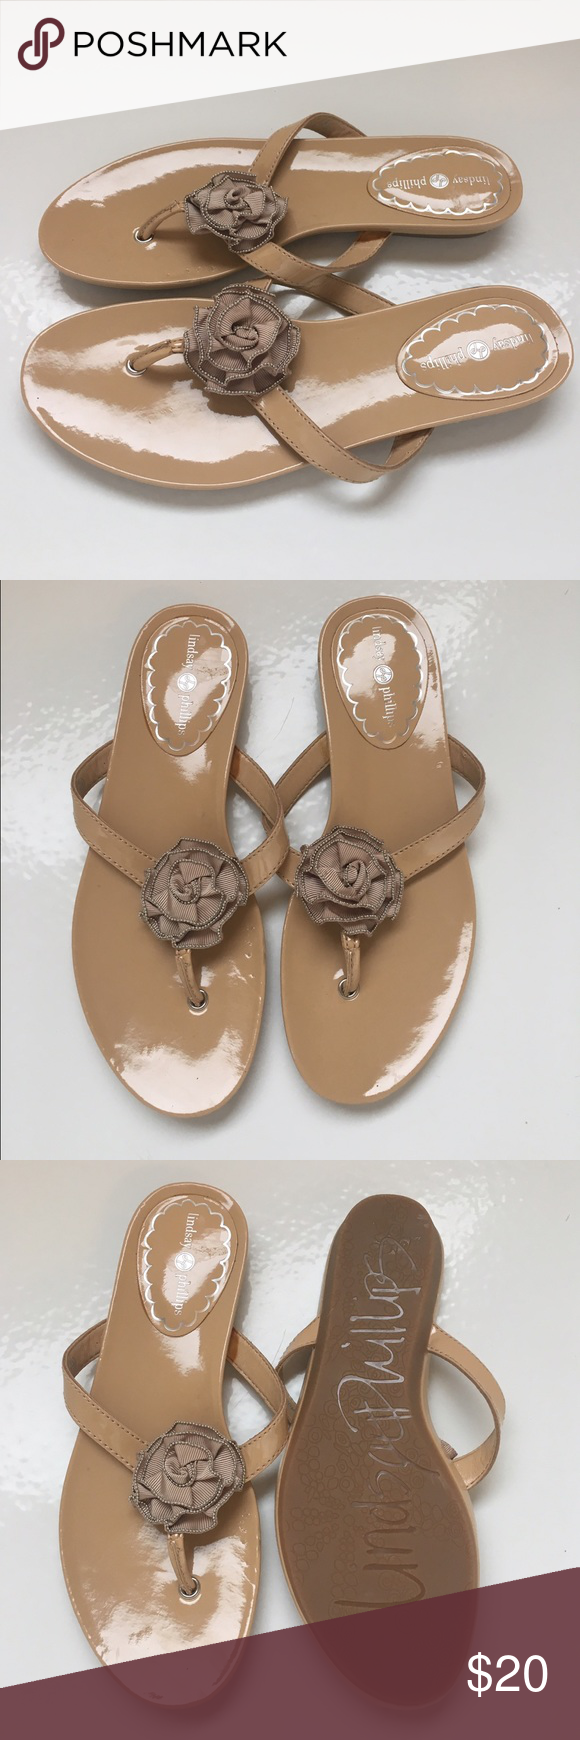 Ladies Lindsay Phillips patent sandals sz 8 Super cute ladies Lindsay Phillips tan patent leather sandals size 8. These are new, never worn. Snap on bow with beading. Slight indent on one shoe, doesn't effect looks or feel. Lindsay Phillips Shoes Sandals